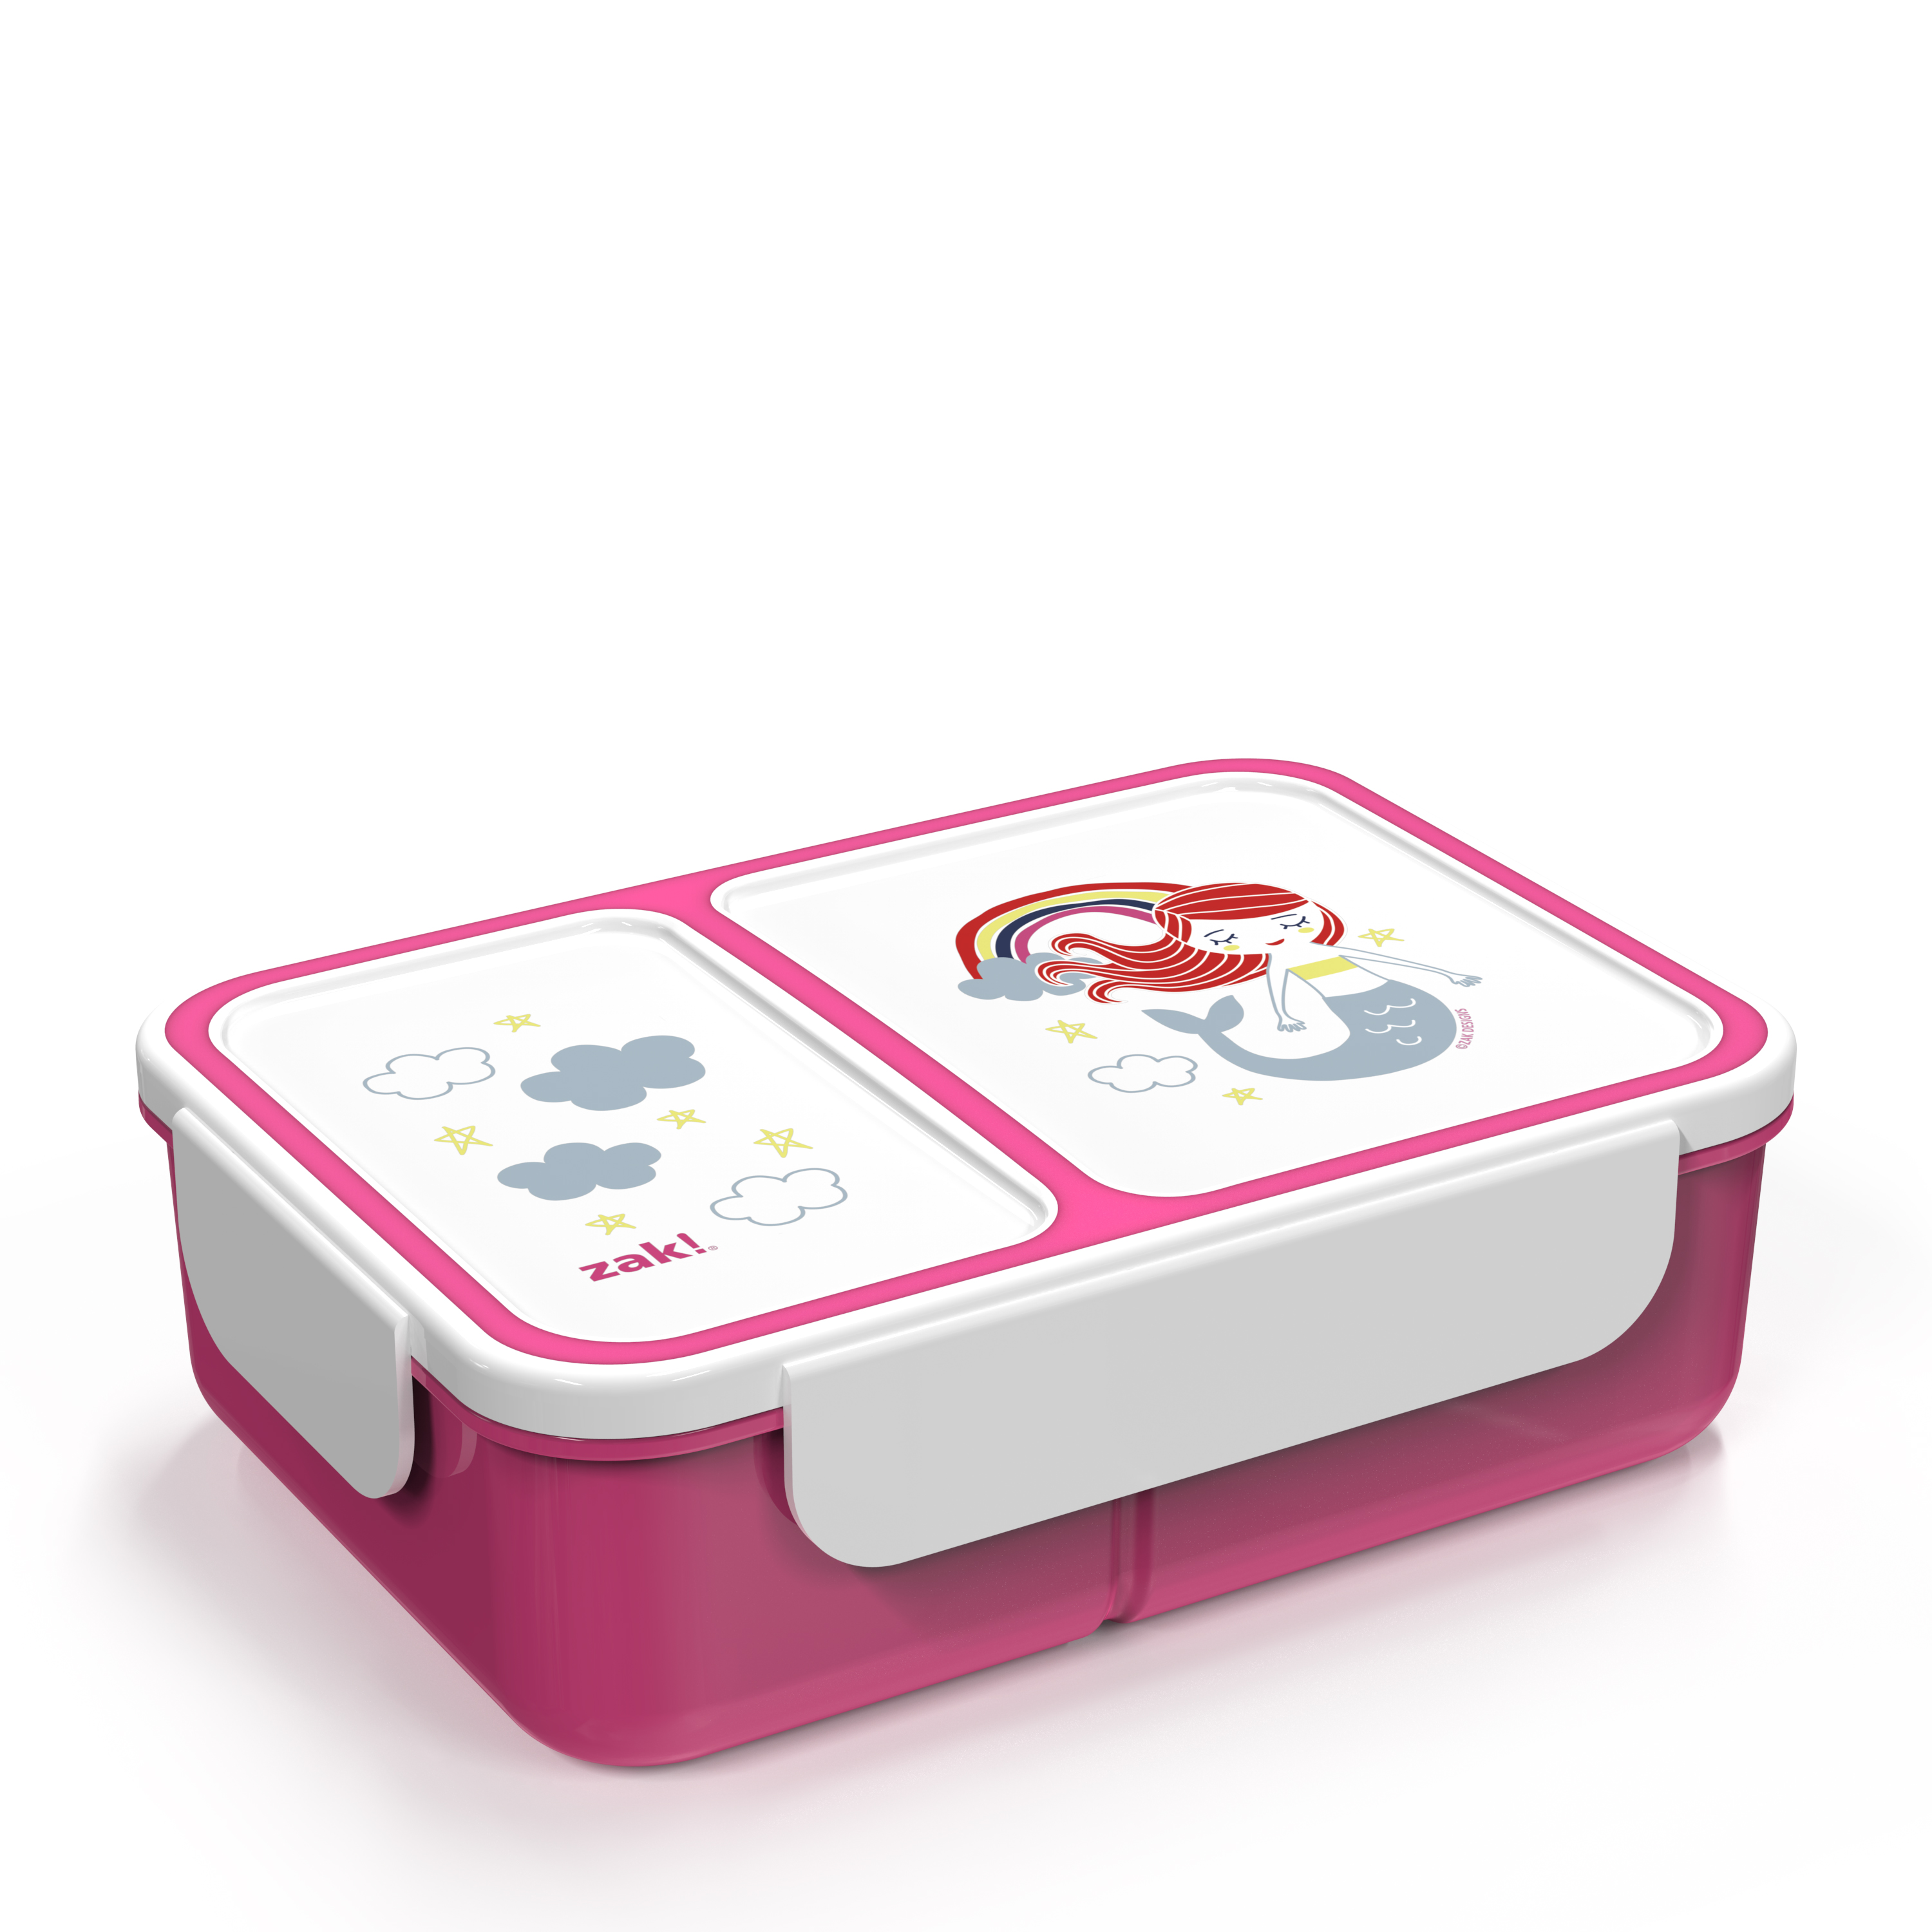 Happy Things Dual-compartment Reusable Bento Box, Mermaids slideshow image 3